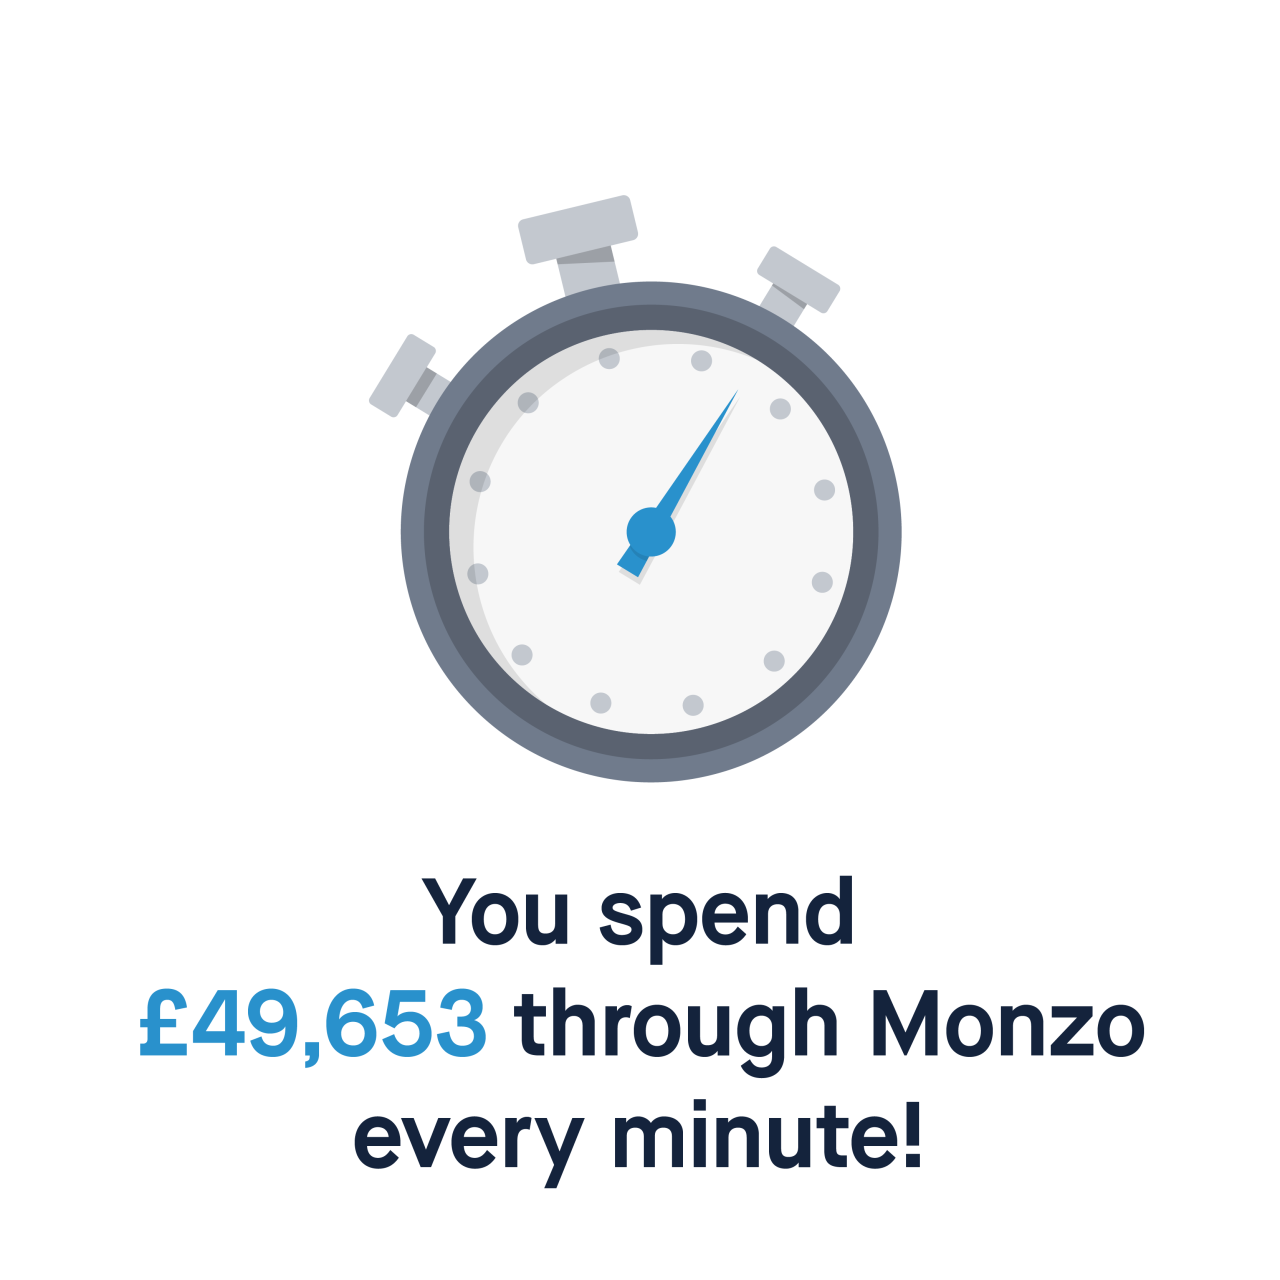 You spend £49,653 through Monzo every minute!